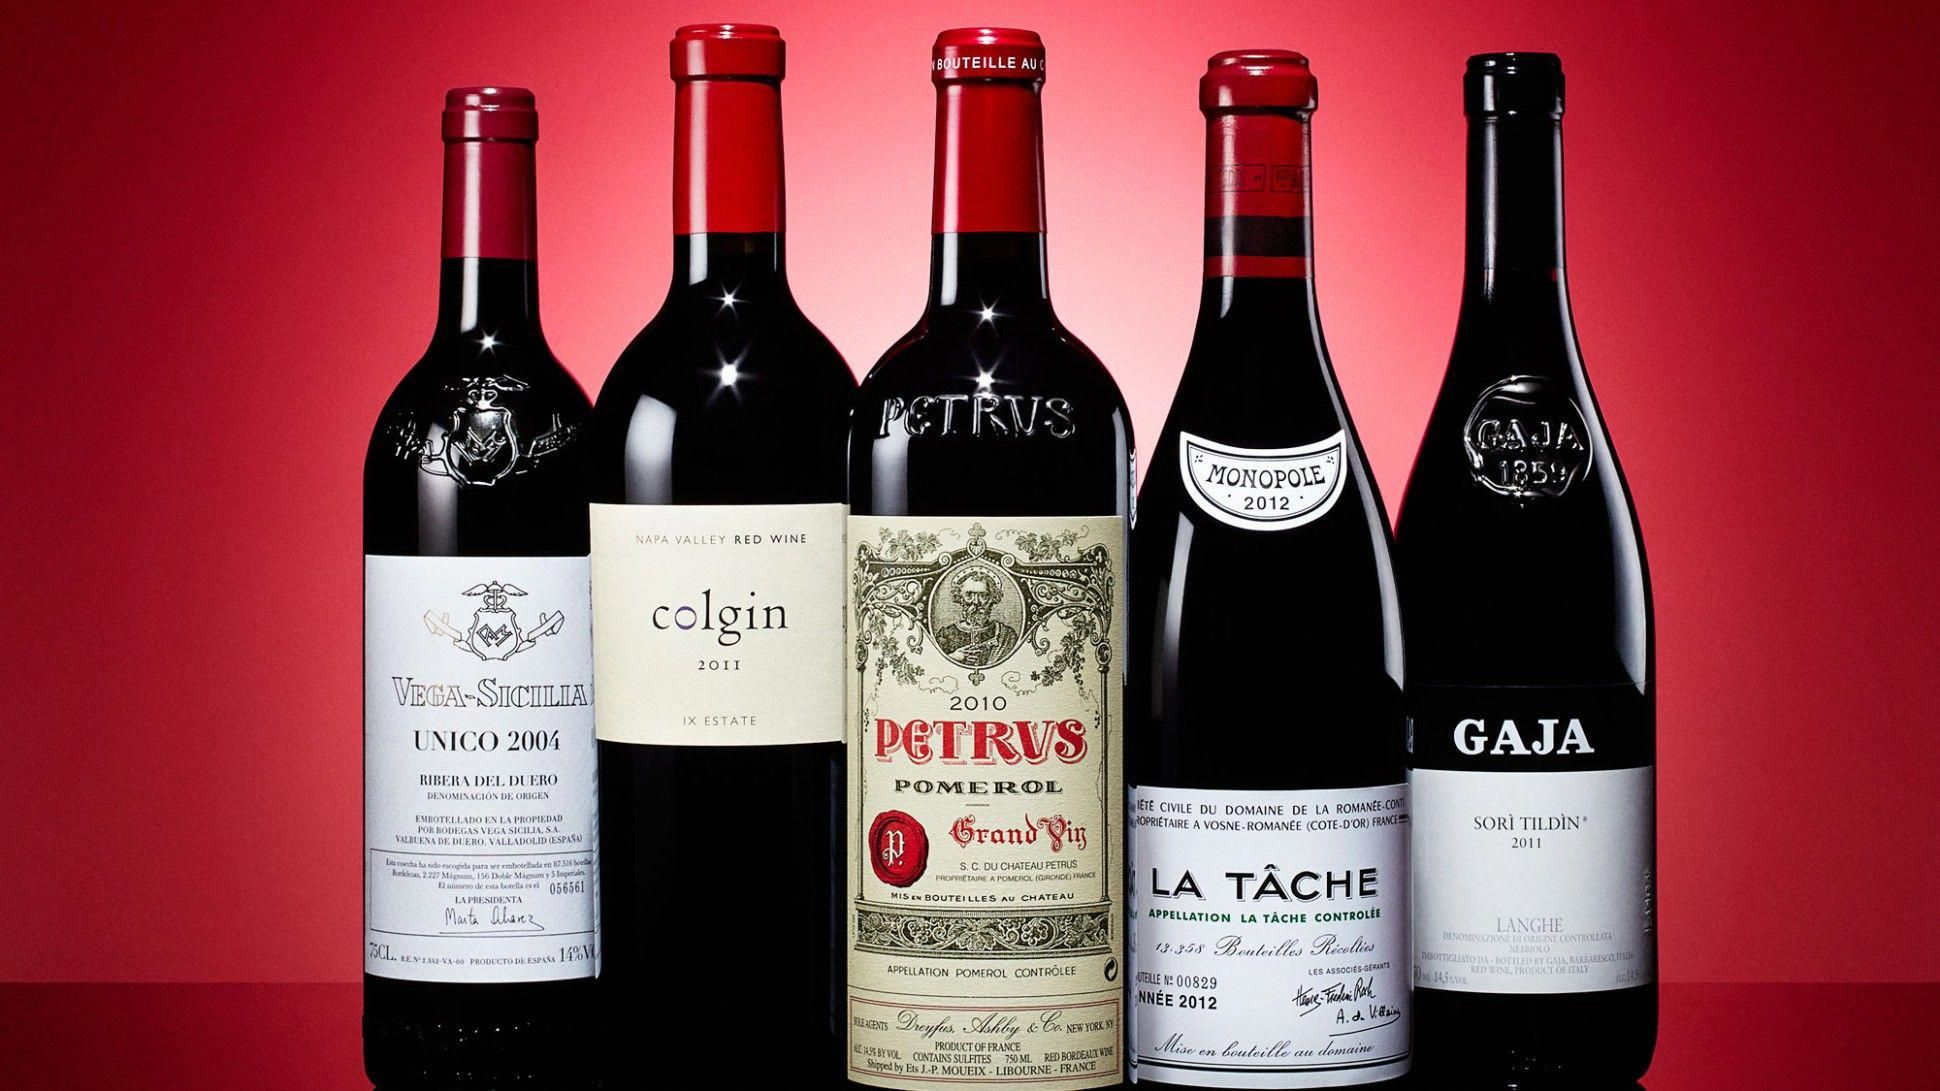 Seal The Deal Big Red Wines Winedeals Red Wine Wine And Spirits Wines